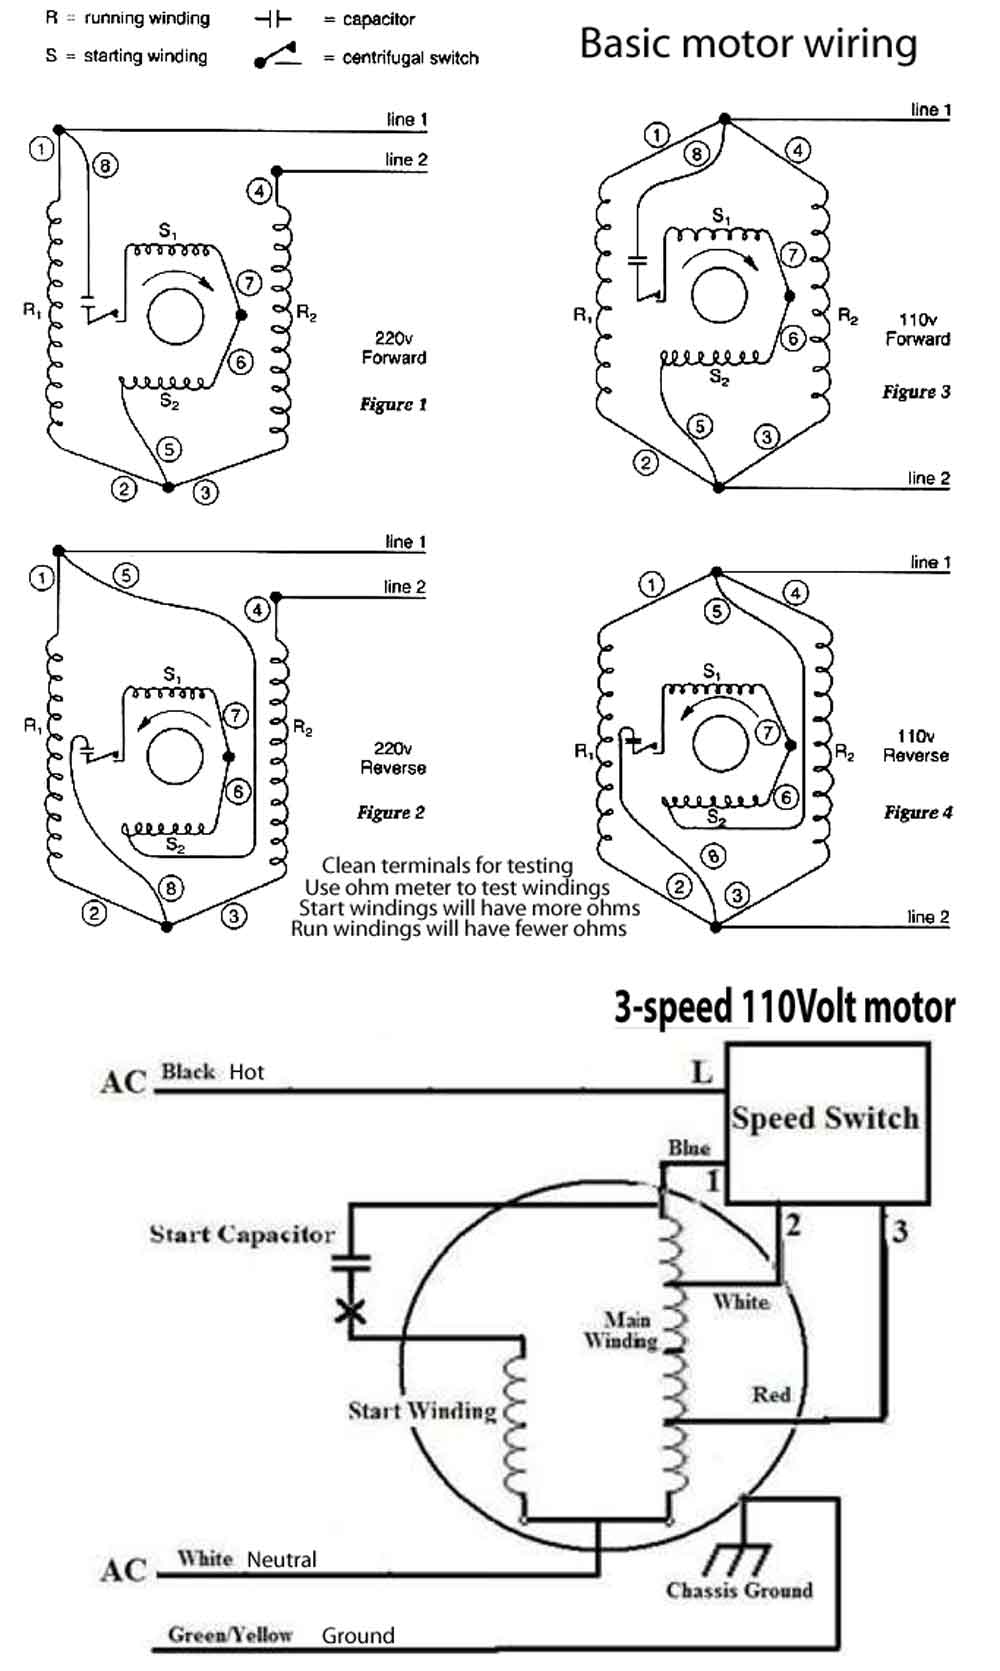 Motor wiring 500 how to wire 3 speed fan switch ct test switch wiring diagram at honlapkeszites.co